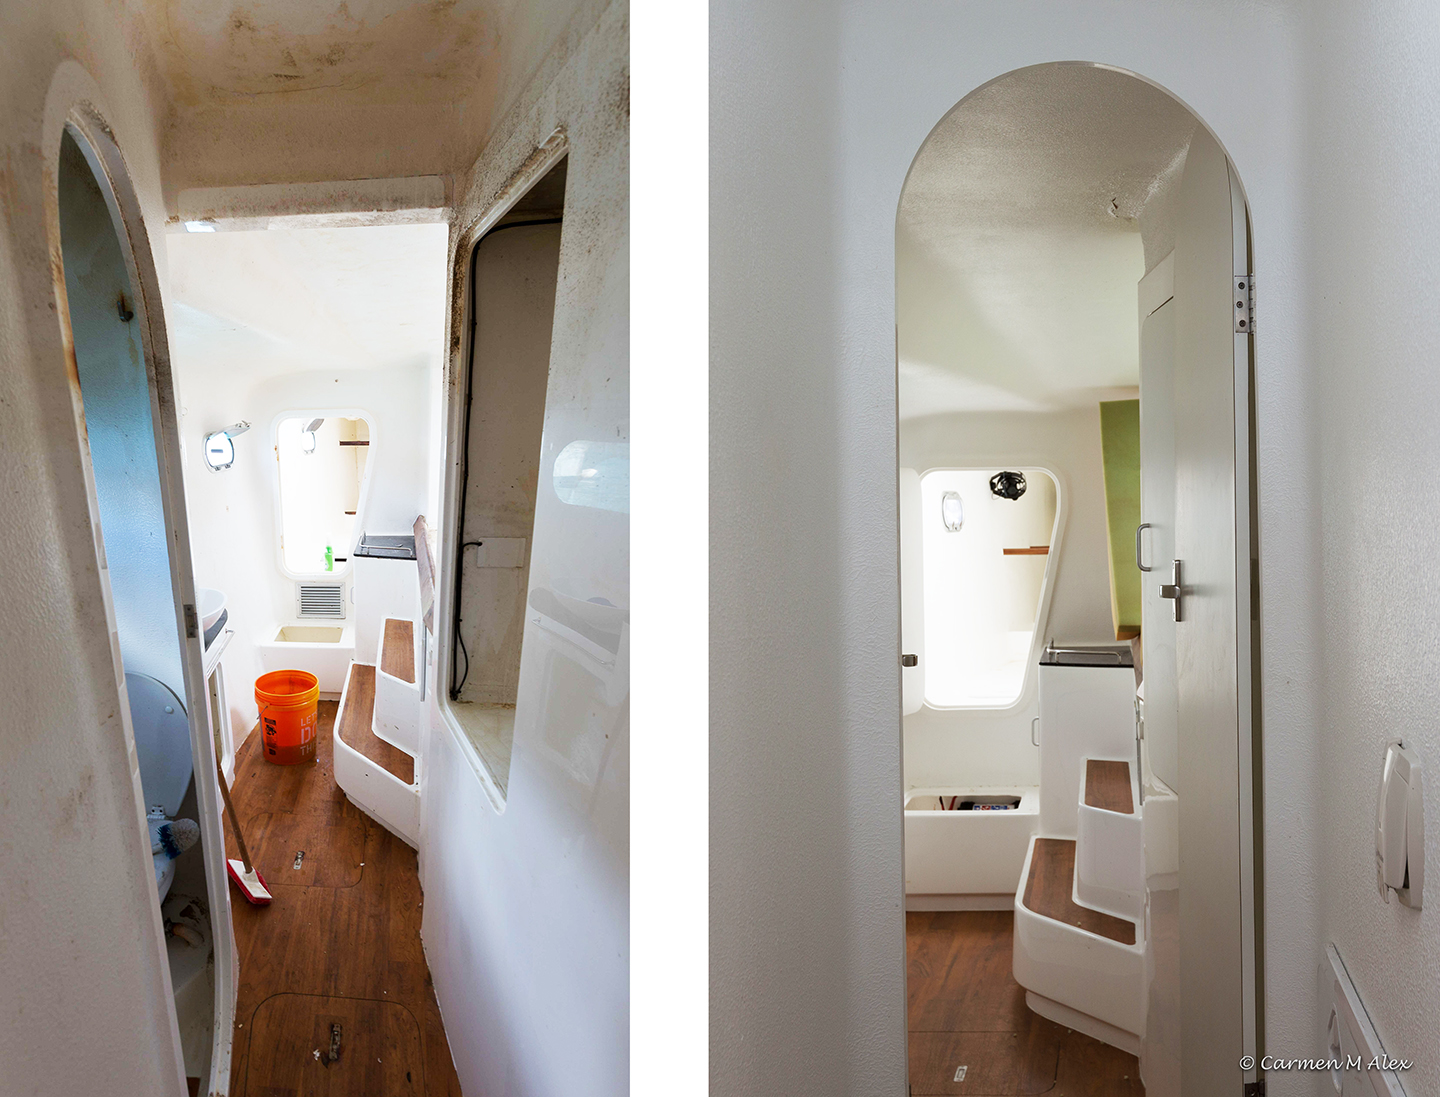 Before and after comparison of cabin cleaning.